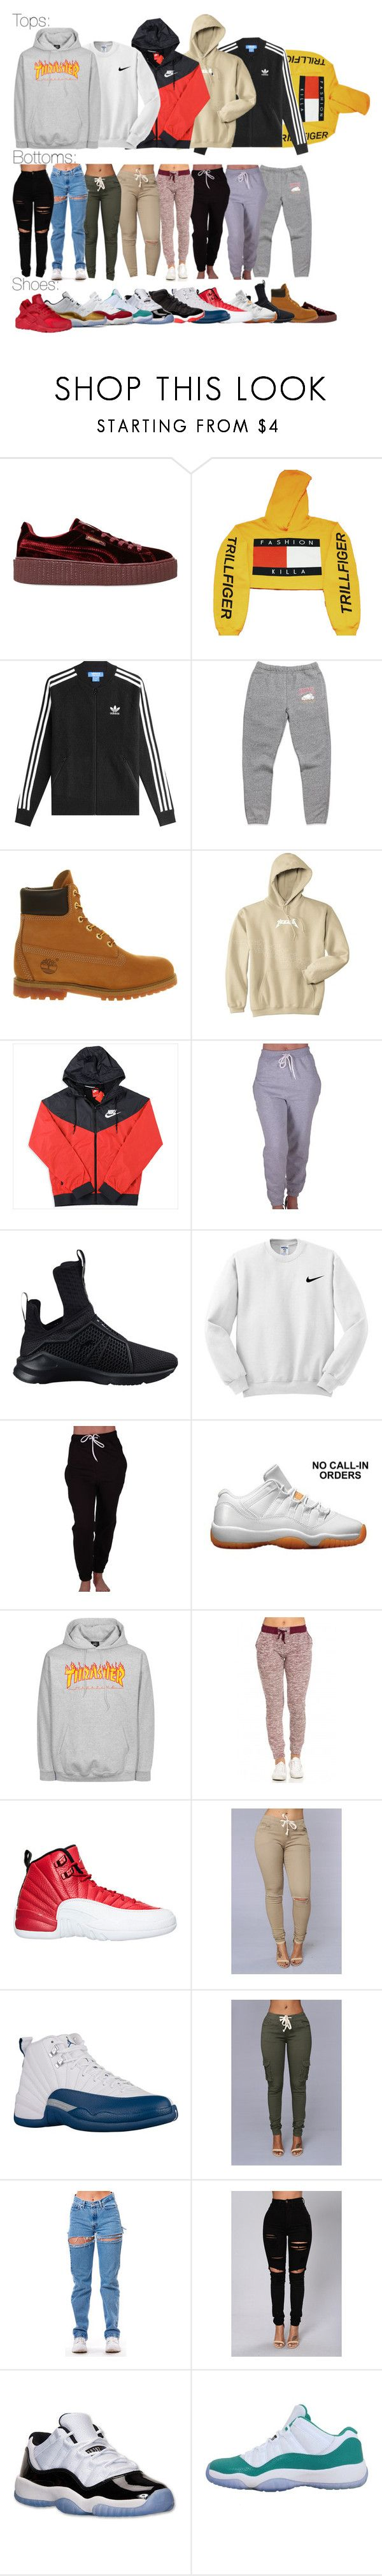 """Stuff I want"" by msixo ❤ liked on Polyvore featuring Puma, adidas Originals, Timberland, NIKE, CO and Retrò"